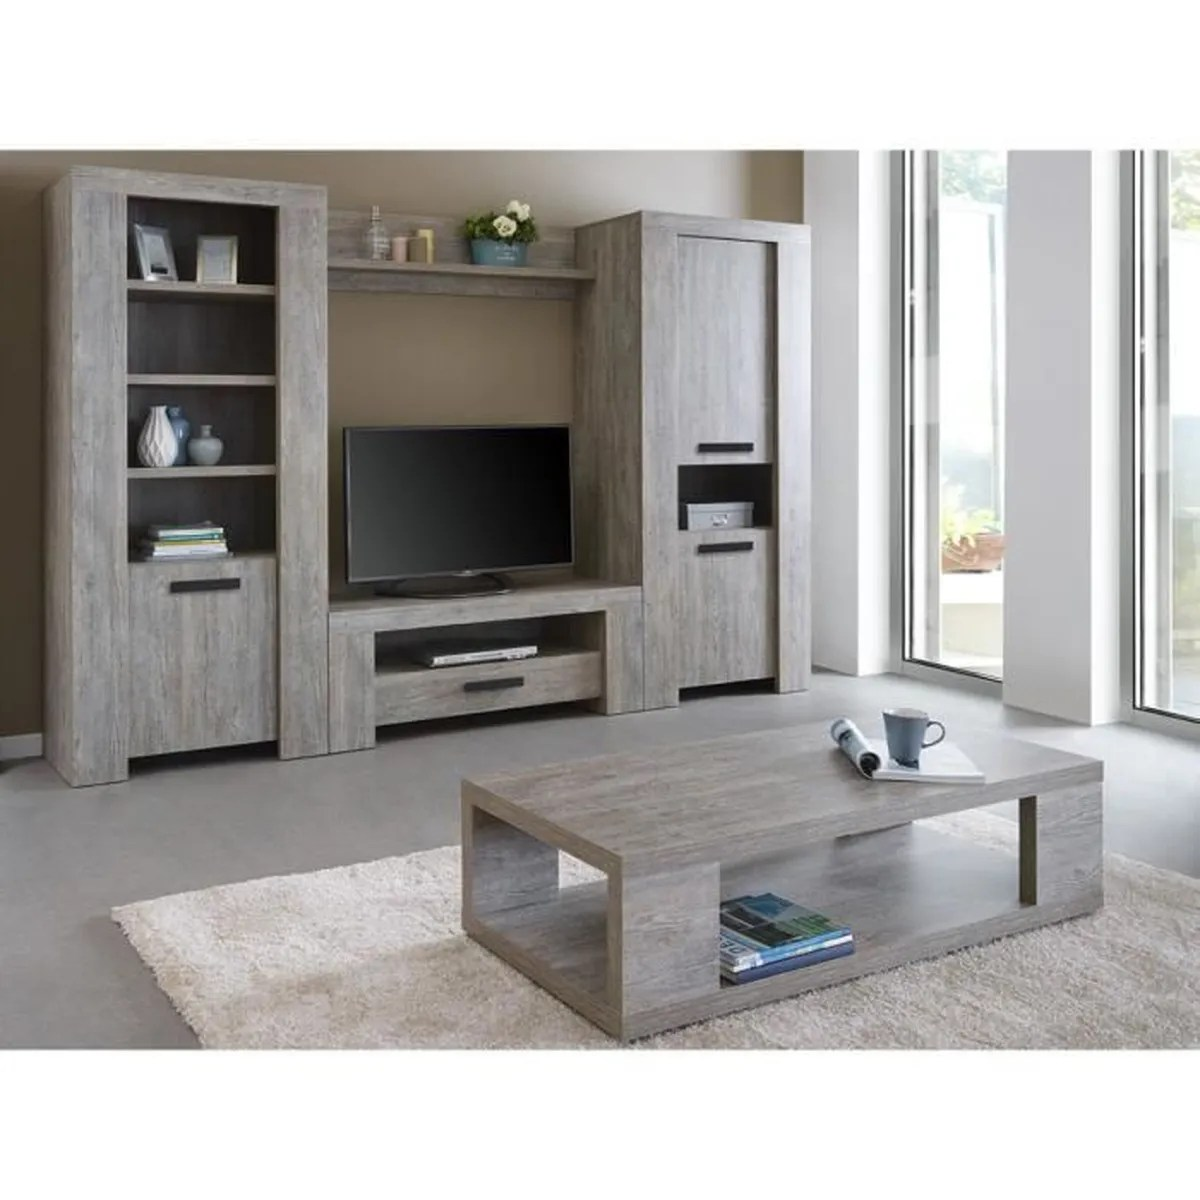 Cdiscount Ensemble Meuble Tv Colorado Table Basse 43 Ensemble Mural Gris Achat